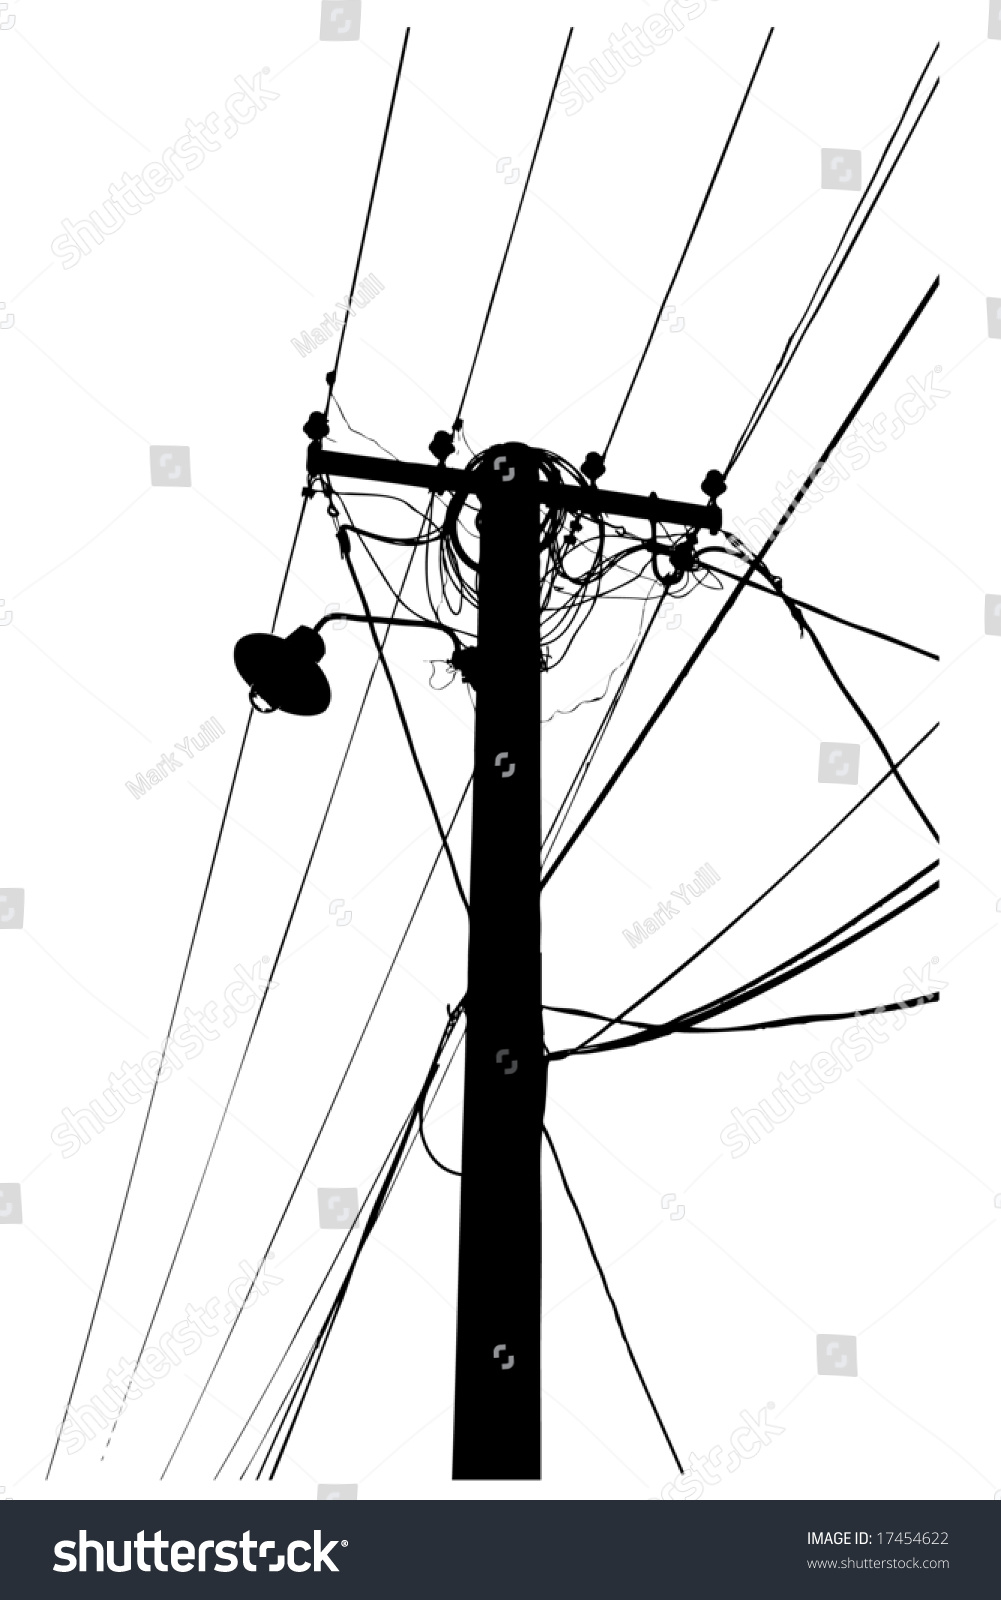 Overhead Electric Cable : Silhouette vector trace overhead electrical power stock